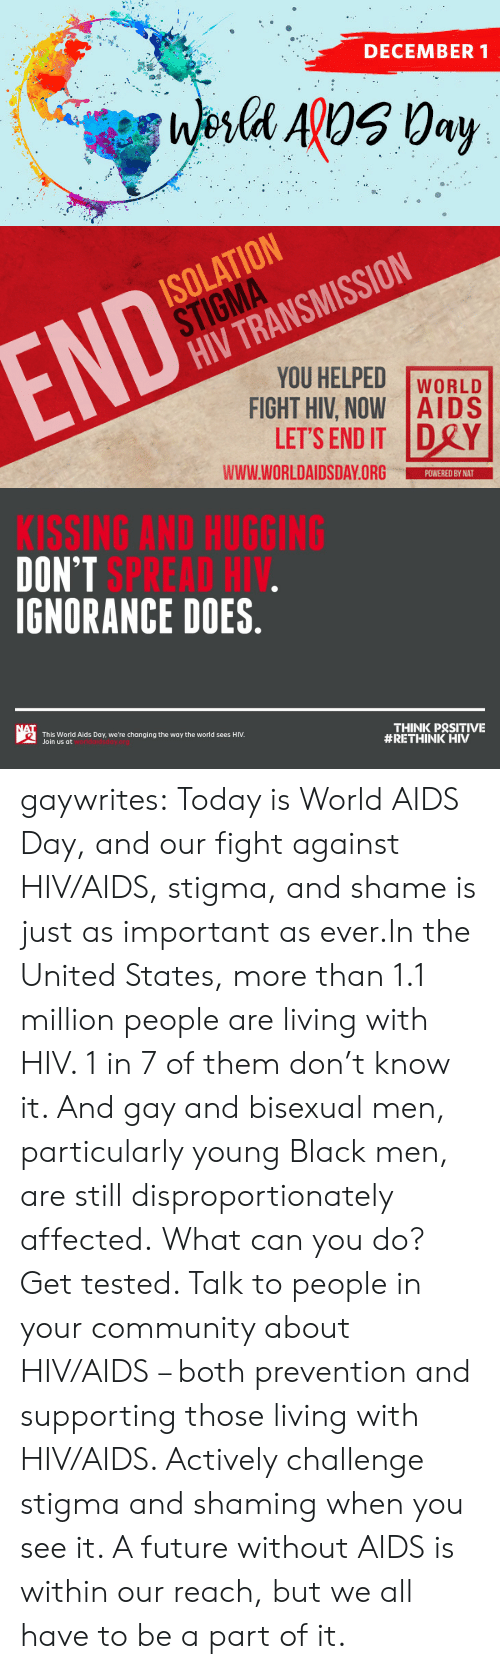 Shaming: DECEMBER 1  Wesla ApOS 0ay   ISOLATION  STIGMA  HIV TRANSMISSION  END  YOU HELPED  FIGHT HIV, NOW AIDS  LET'S END IT DRY  WORLD  www.WORLDAIDSDAY.ORG  POWERED BY NAT   KISSING AND HUGGING  DON'T SPREAD HIV.  IGNORANCE DOES.  NAT  THINK PRSITIVE  #RETHINK HIV  This World Aids Day, we're changing the way the world sees HIV.  Join us at gaywrites:  Today is World AIDS Day, and our fight against HIV/AIDS, stigma, and shame is just as important as ever.In the United States, more than 1.1 million people are living with HIV. 1 in 7 of them don't know it. And gay and bisexual men, particularly young Black men, are still disproportionately affected. What can you do? Get tested. Talk to people in your community about HIV/AIDS – both prevention and supporting those living with HIV/AIDS. Actively challenge stigma and shaming when you see it. A future without AIDS is within our reach, but we all have to be a part of it.